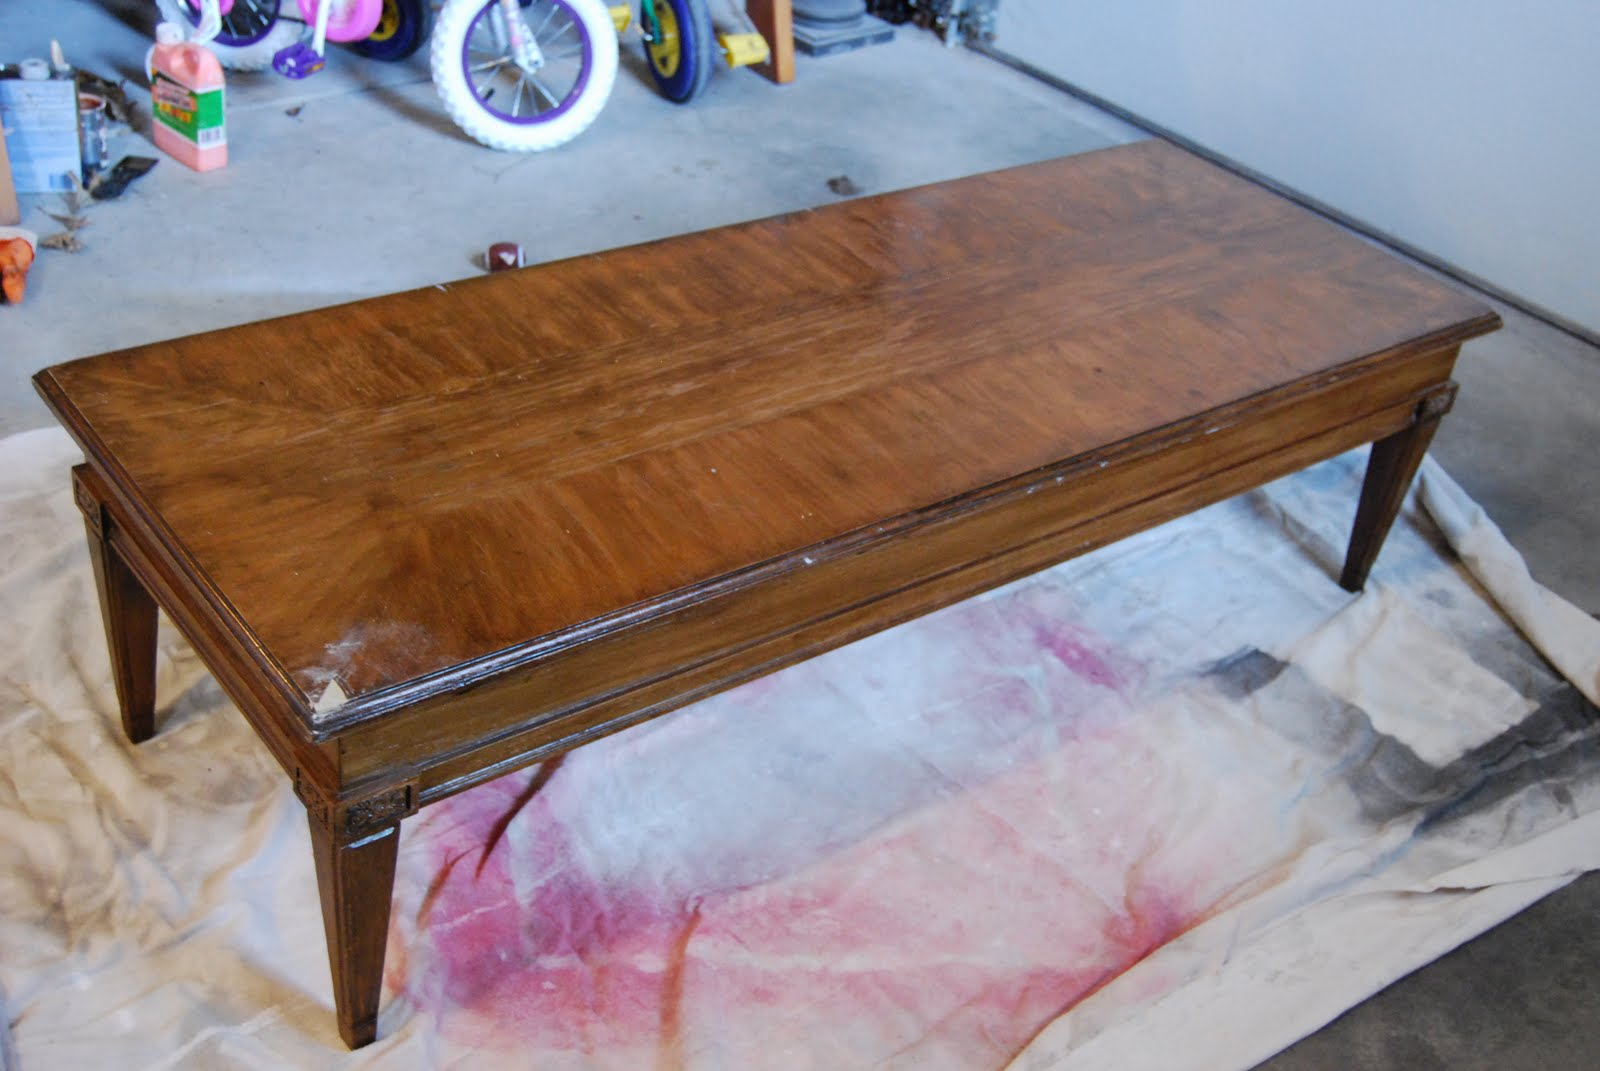 Inspired by you: Coffe table turned bench